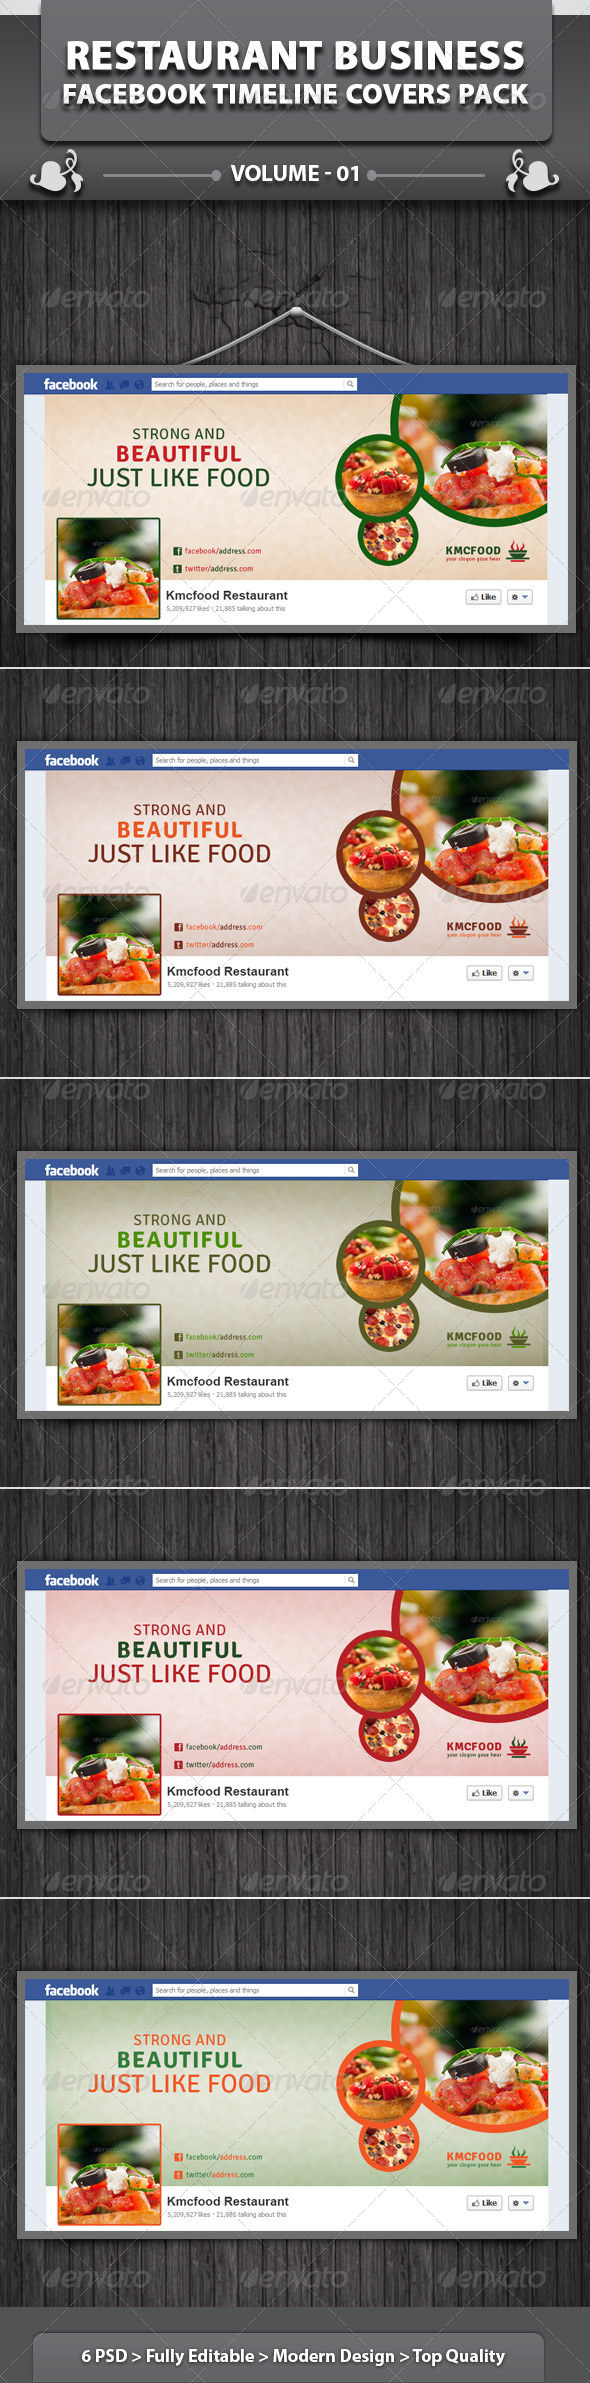 Restaurant Business FB Timeline | Volume 14 - Facebook Timeline Covers Social Media